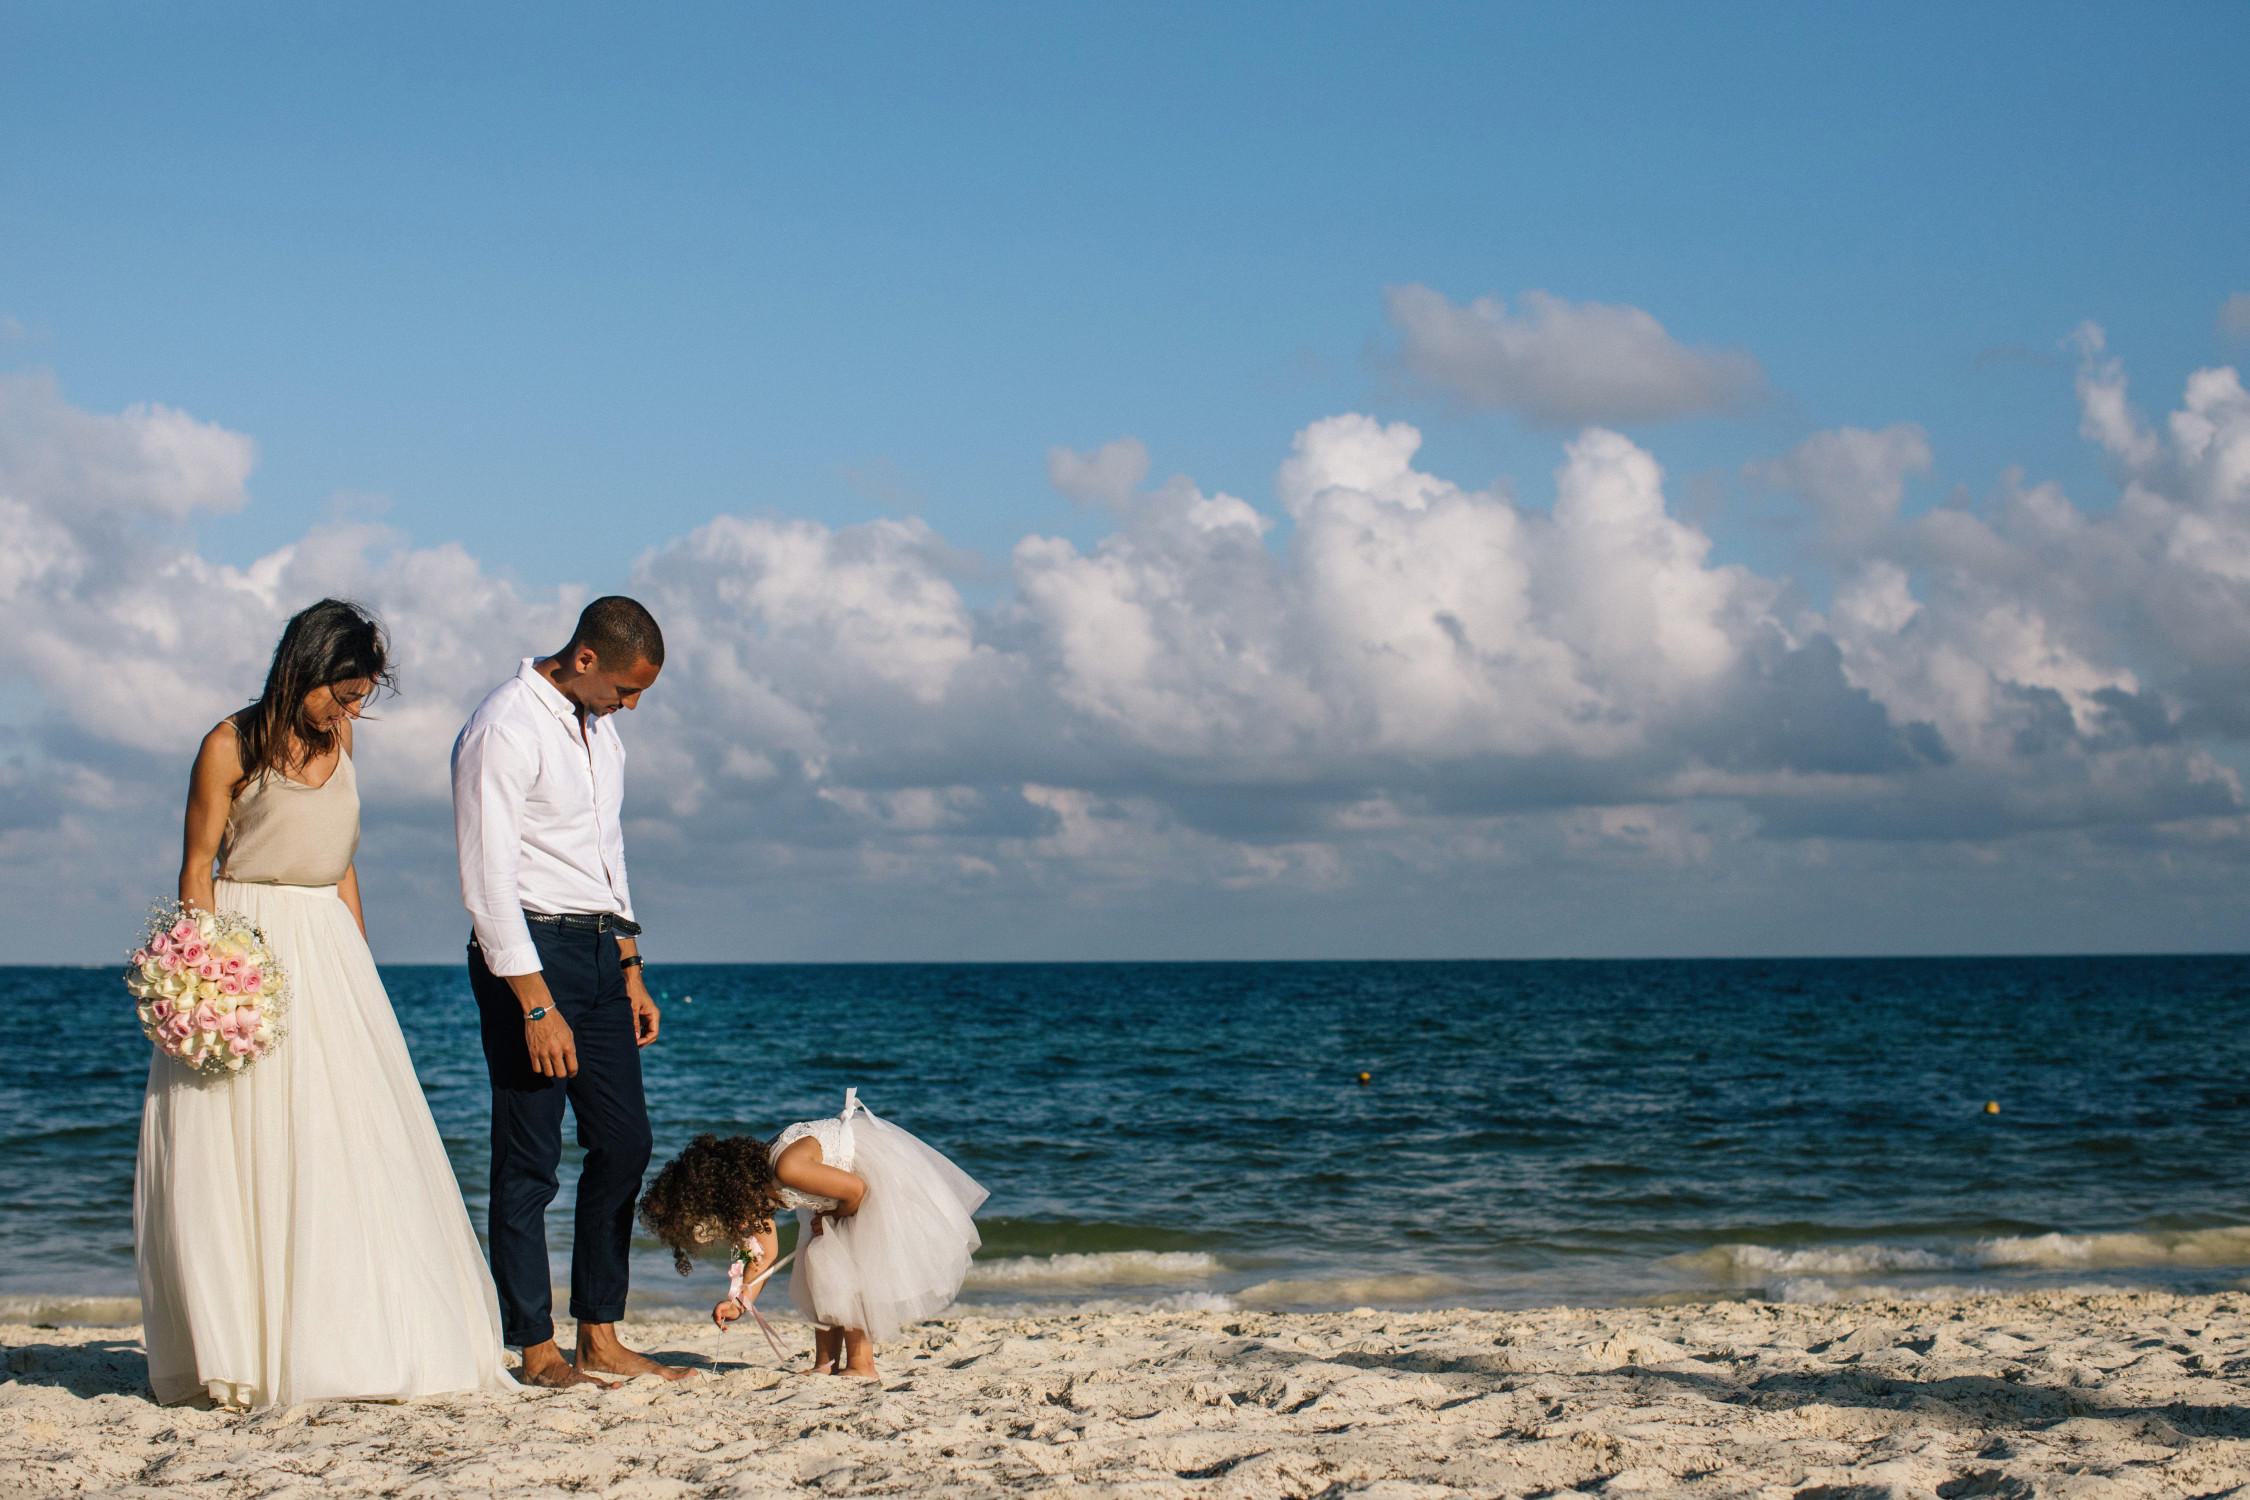 cancun-riviera-royalton-wedding-photography-kelly-clarke-photography-671